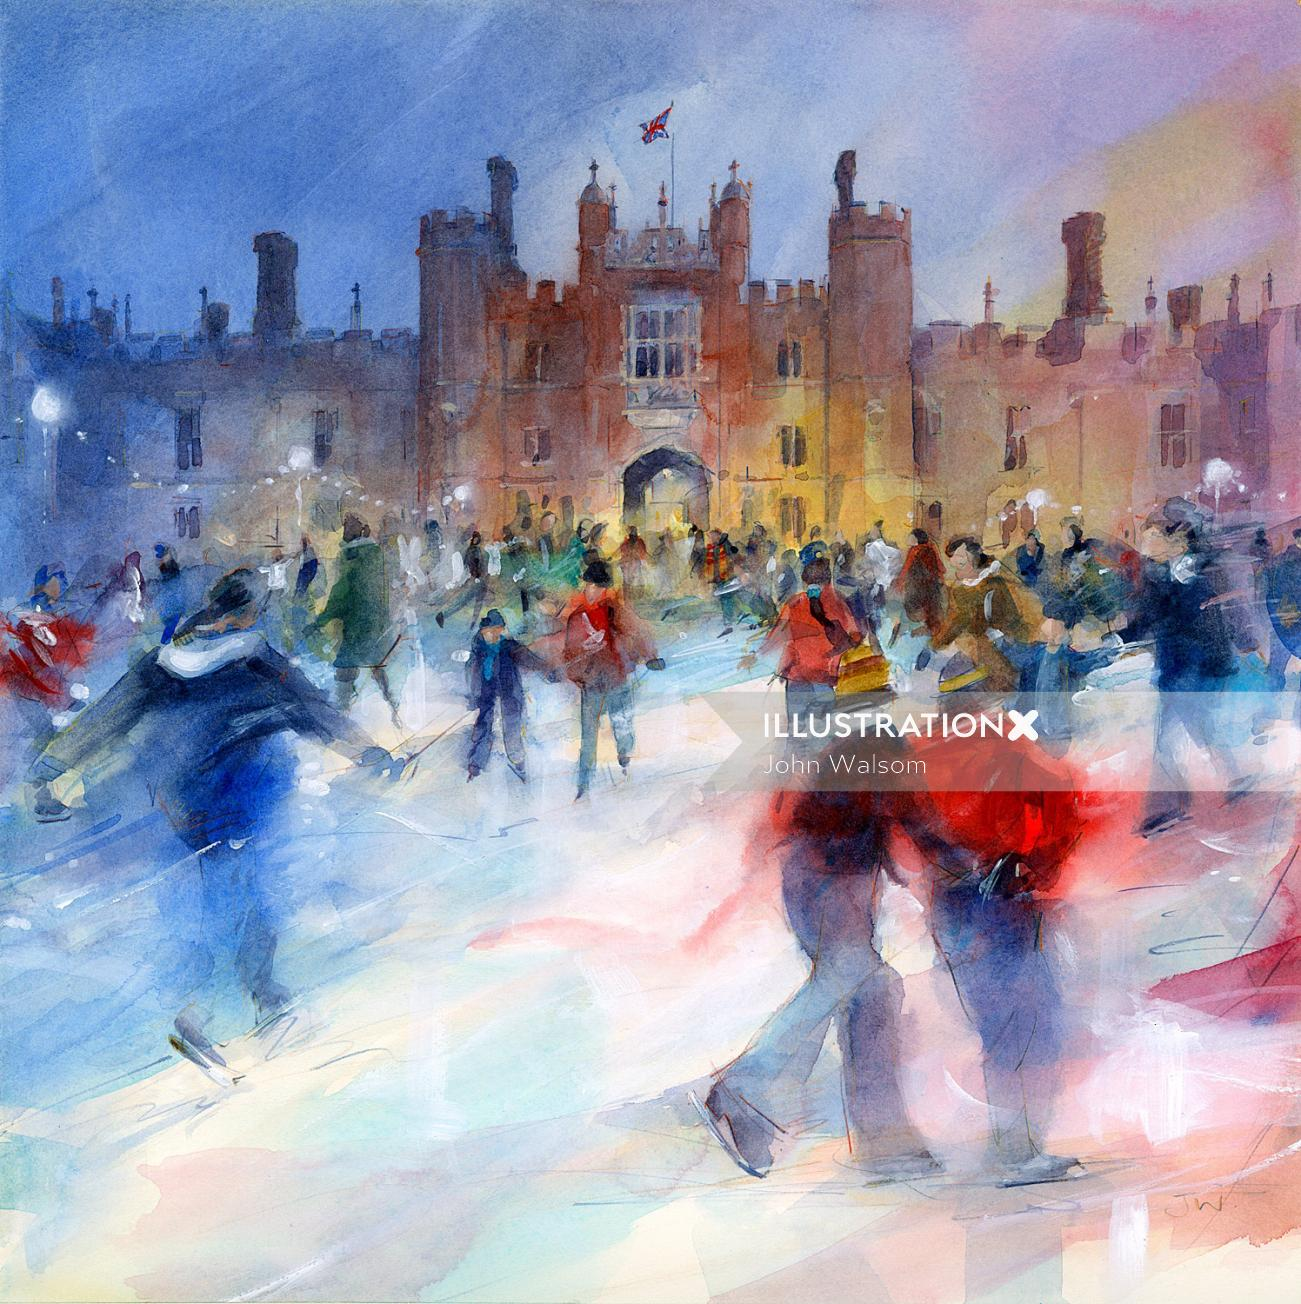 Ice Skating at Hampton Court Watercolour Illustration